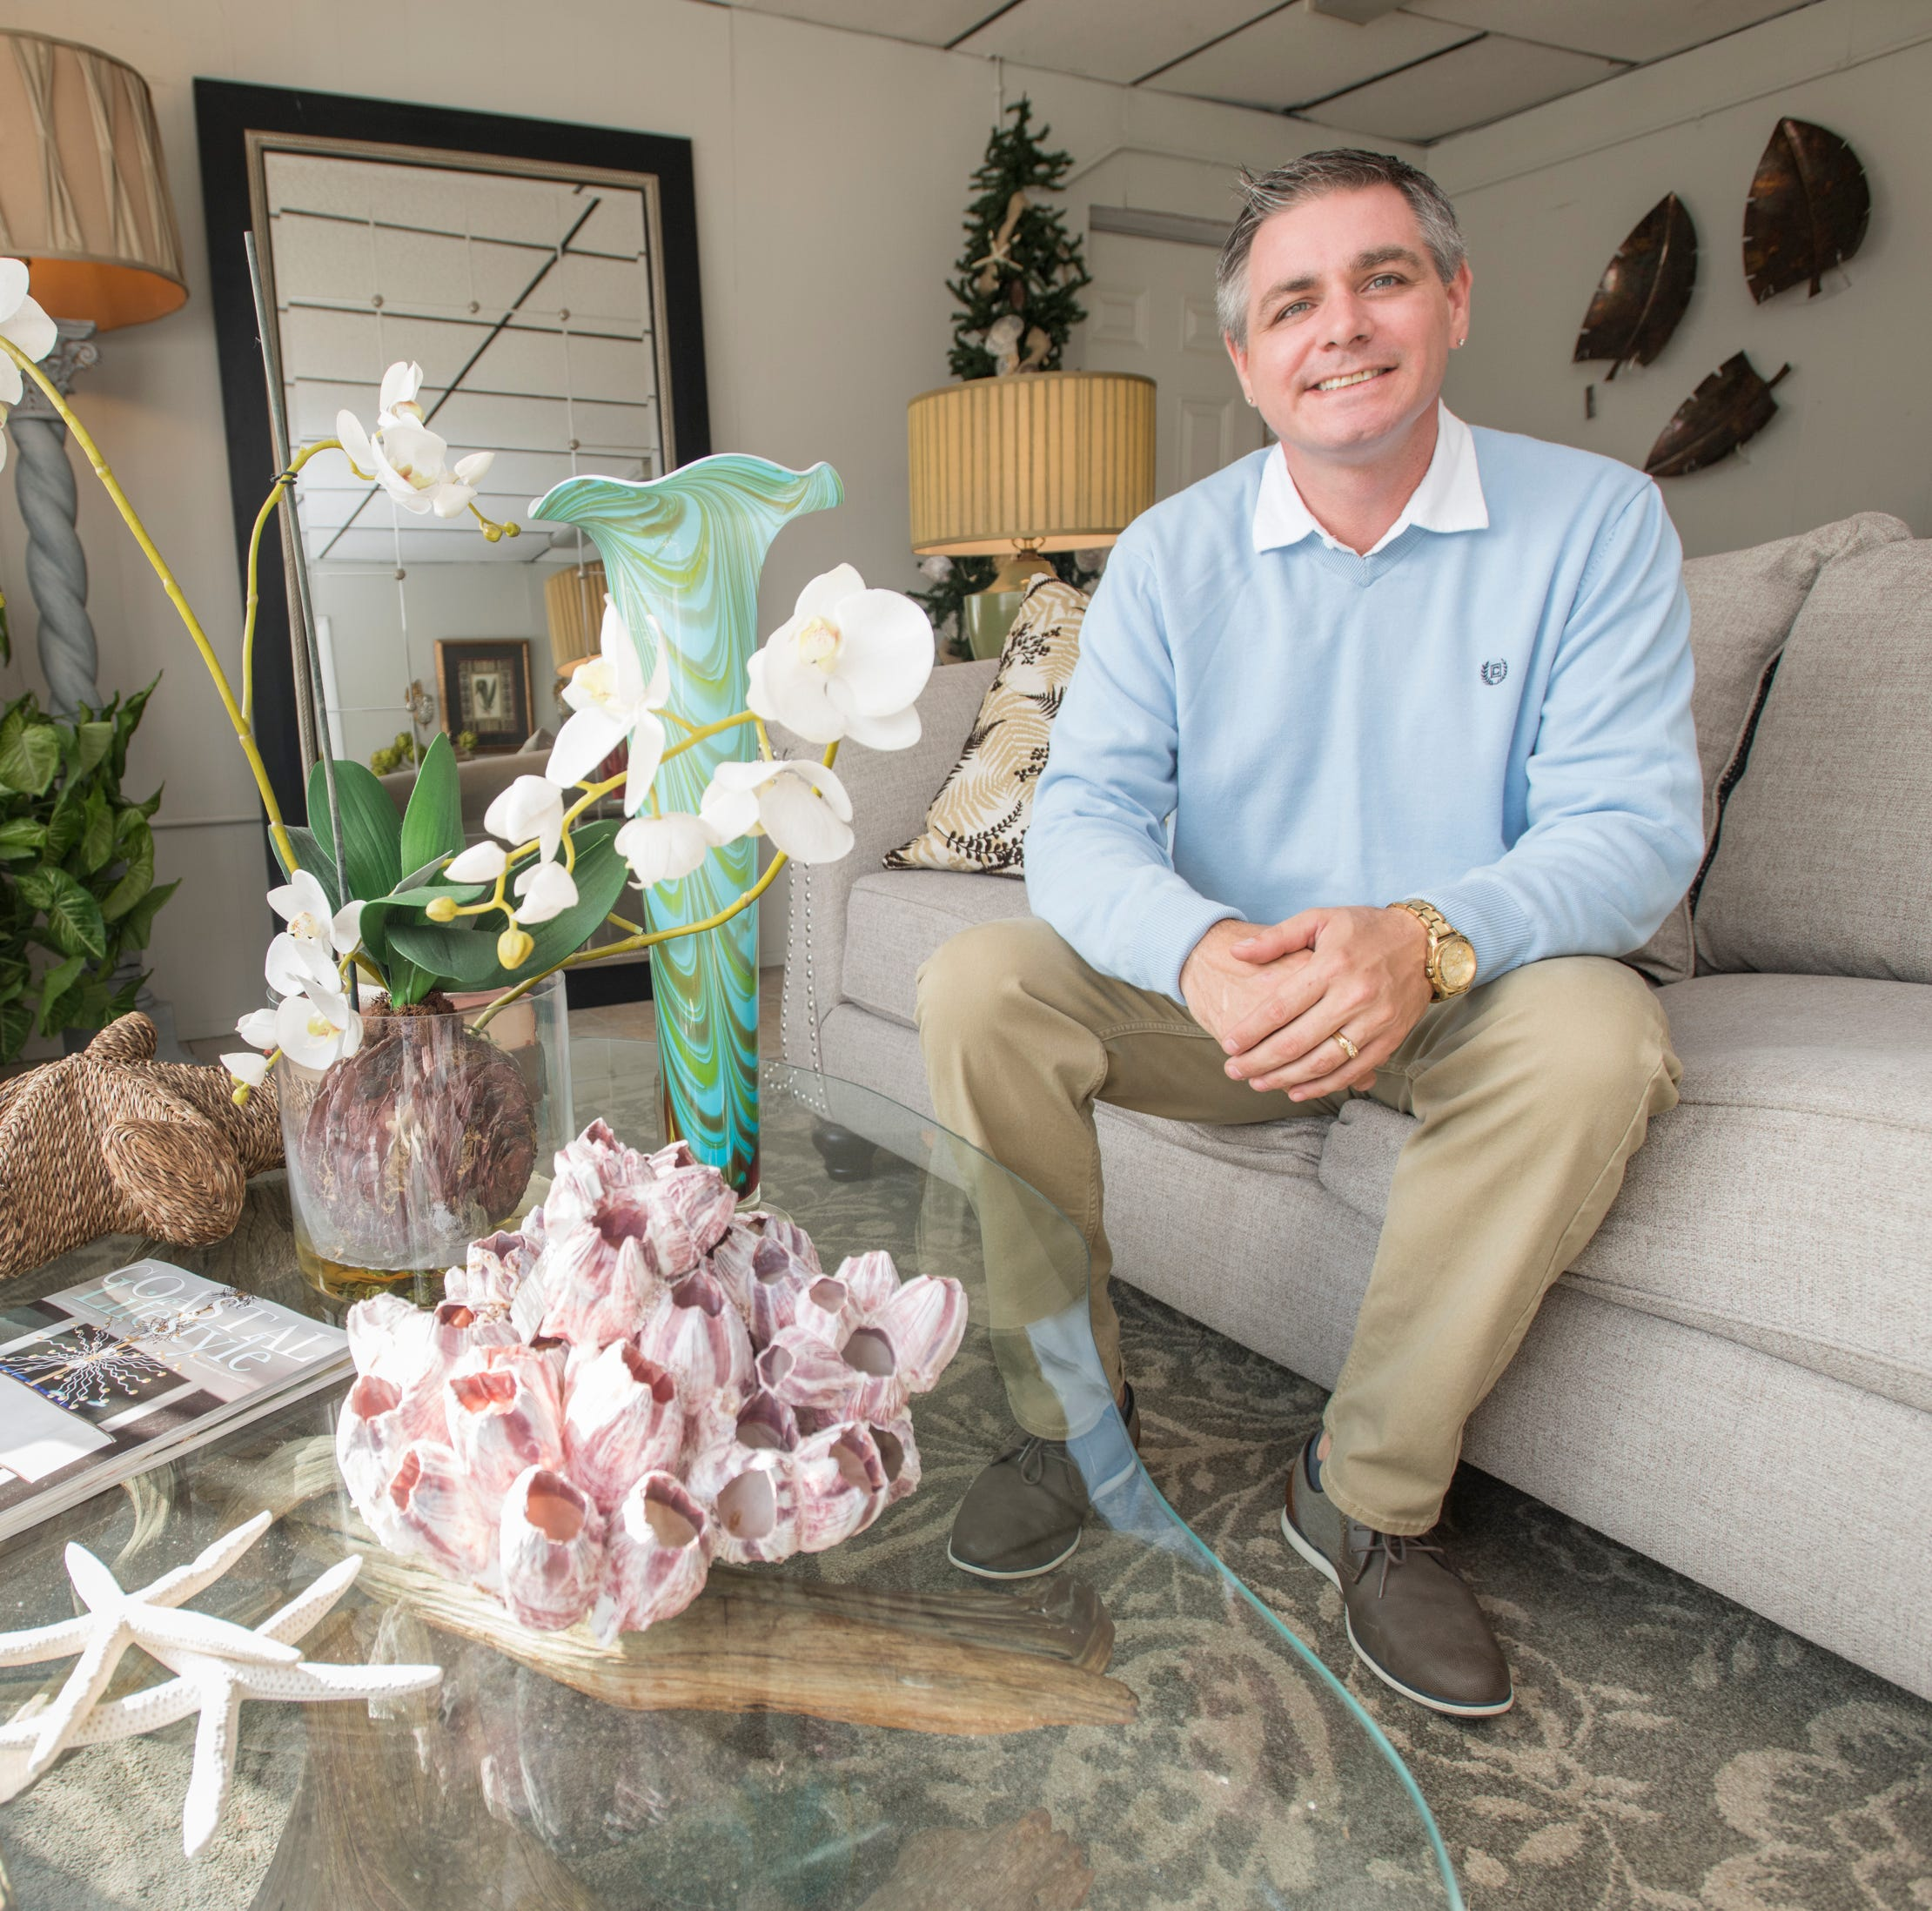 Co-owner Christopher Strawderman poses in the showroom of the new Barrancas Interiors on Barrancas Avenue in Pensacola on Tuesday, November 20, 2018.